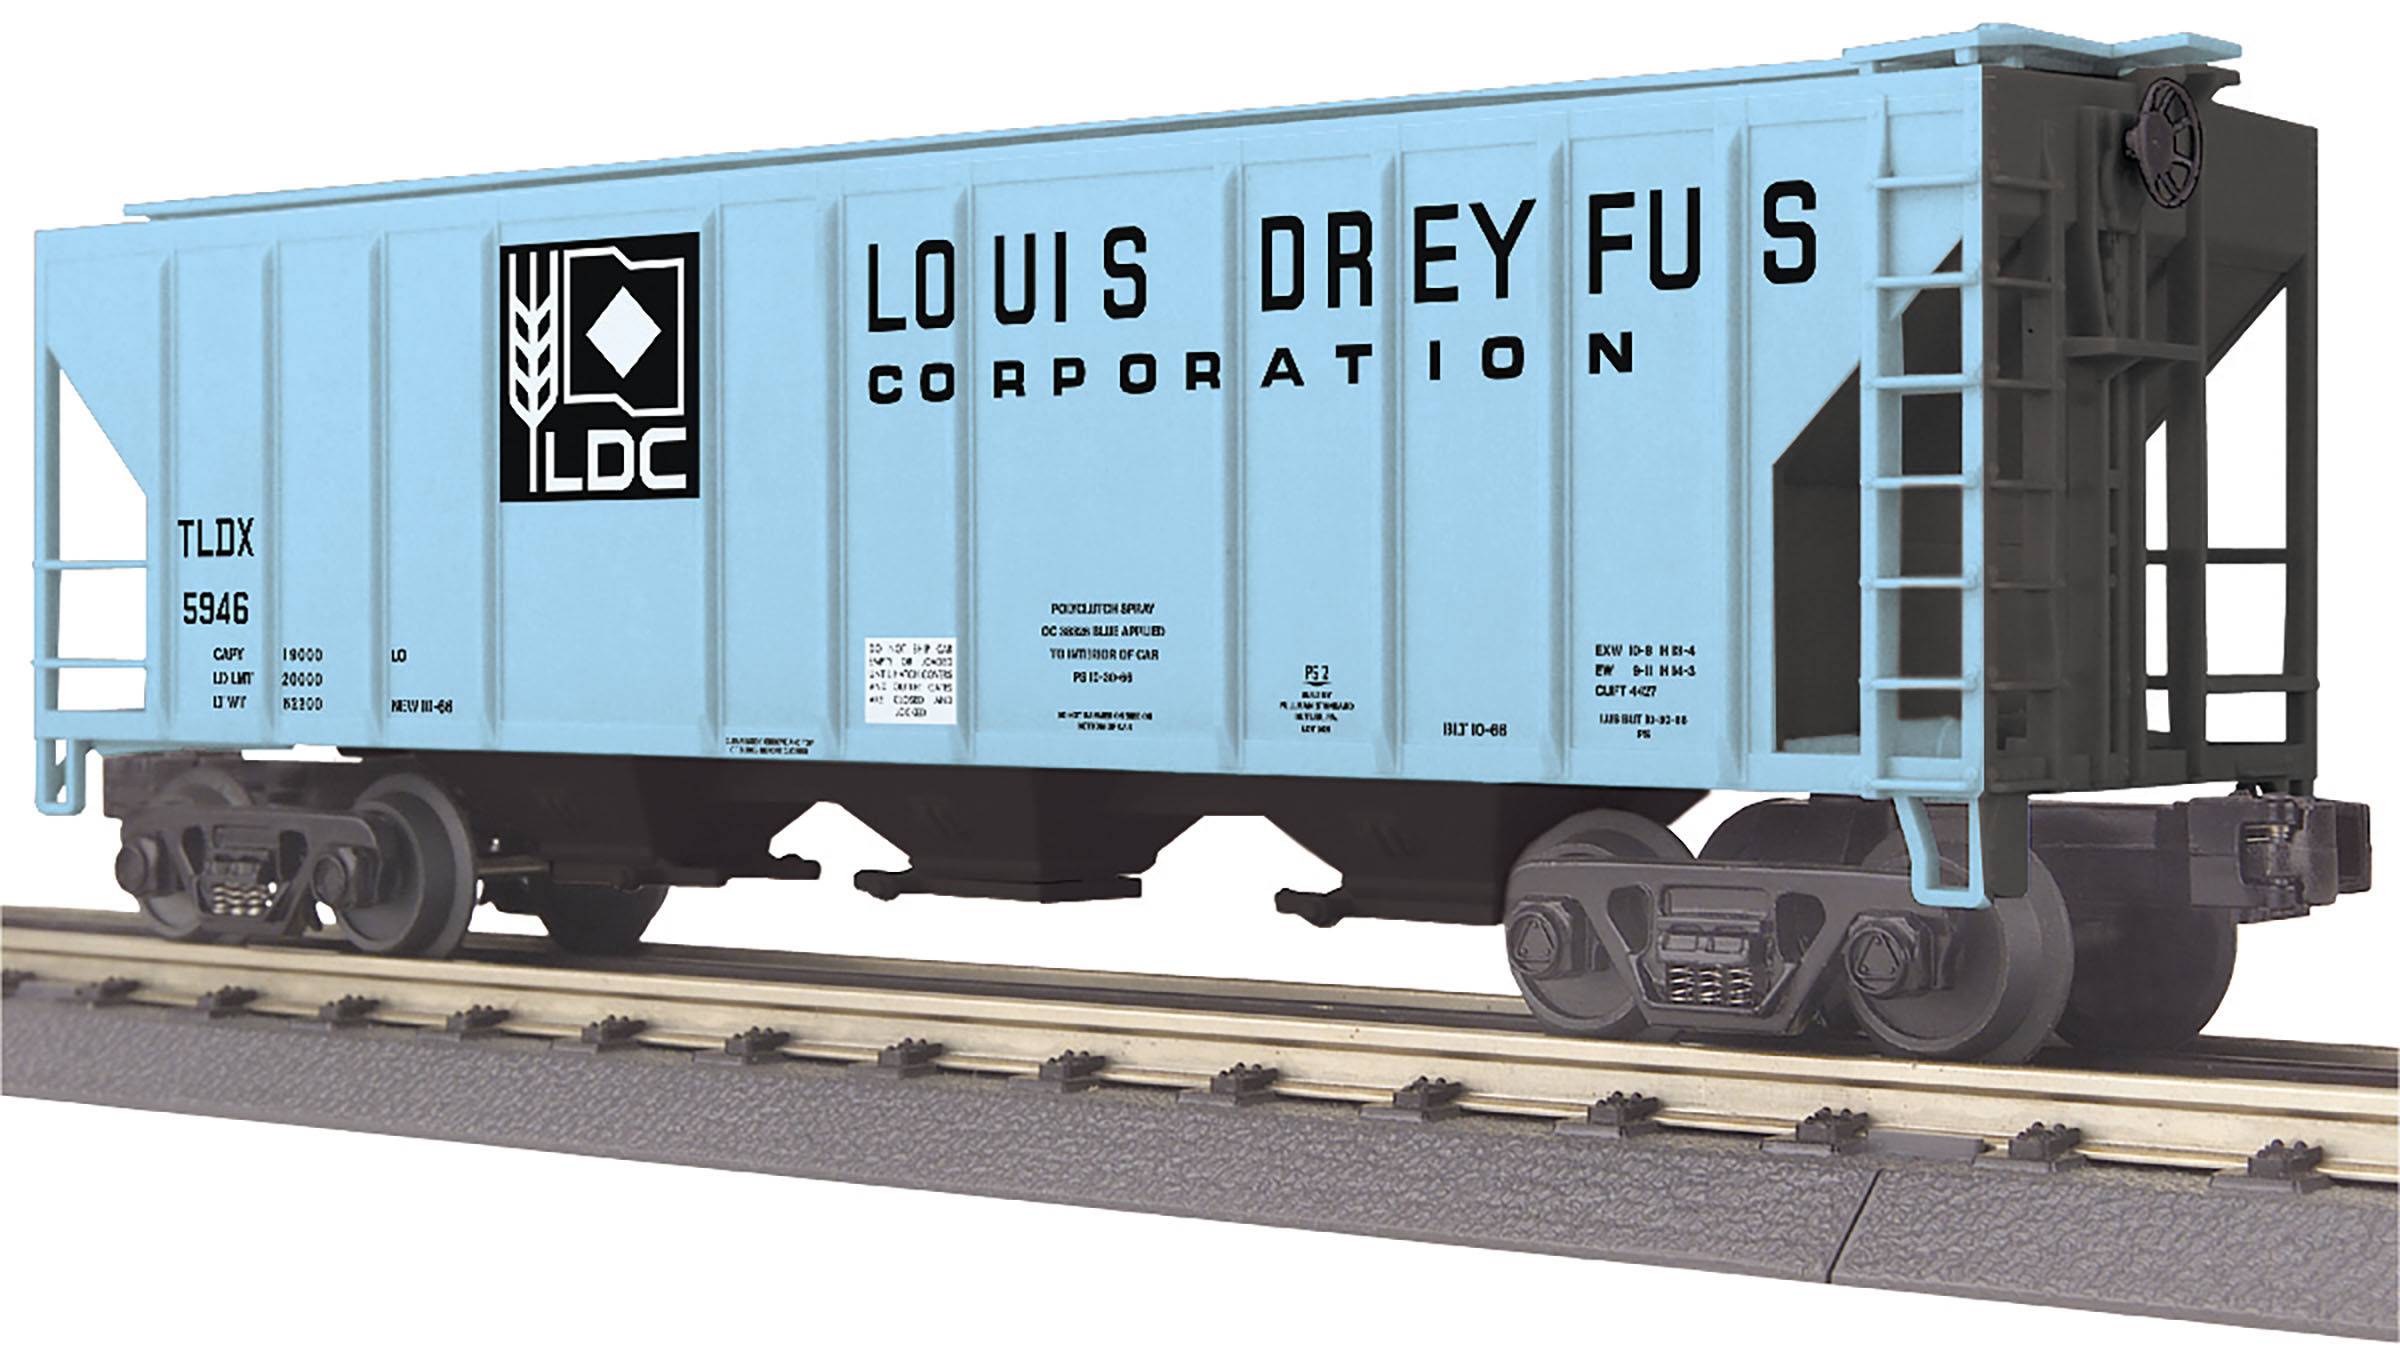 MTH3075625 MTH Electric Trains O-27 PS-2 Discharge Hop, Louis Dreyfus Corp #5946